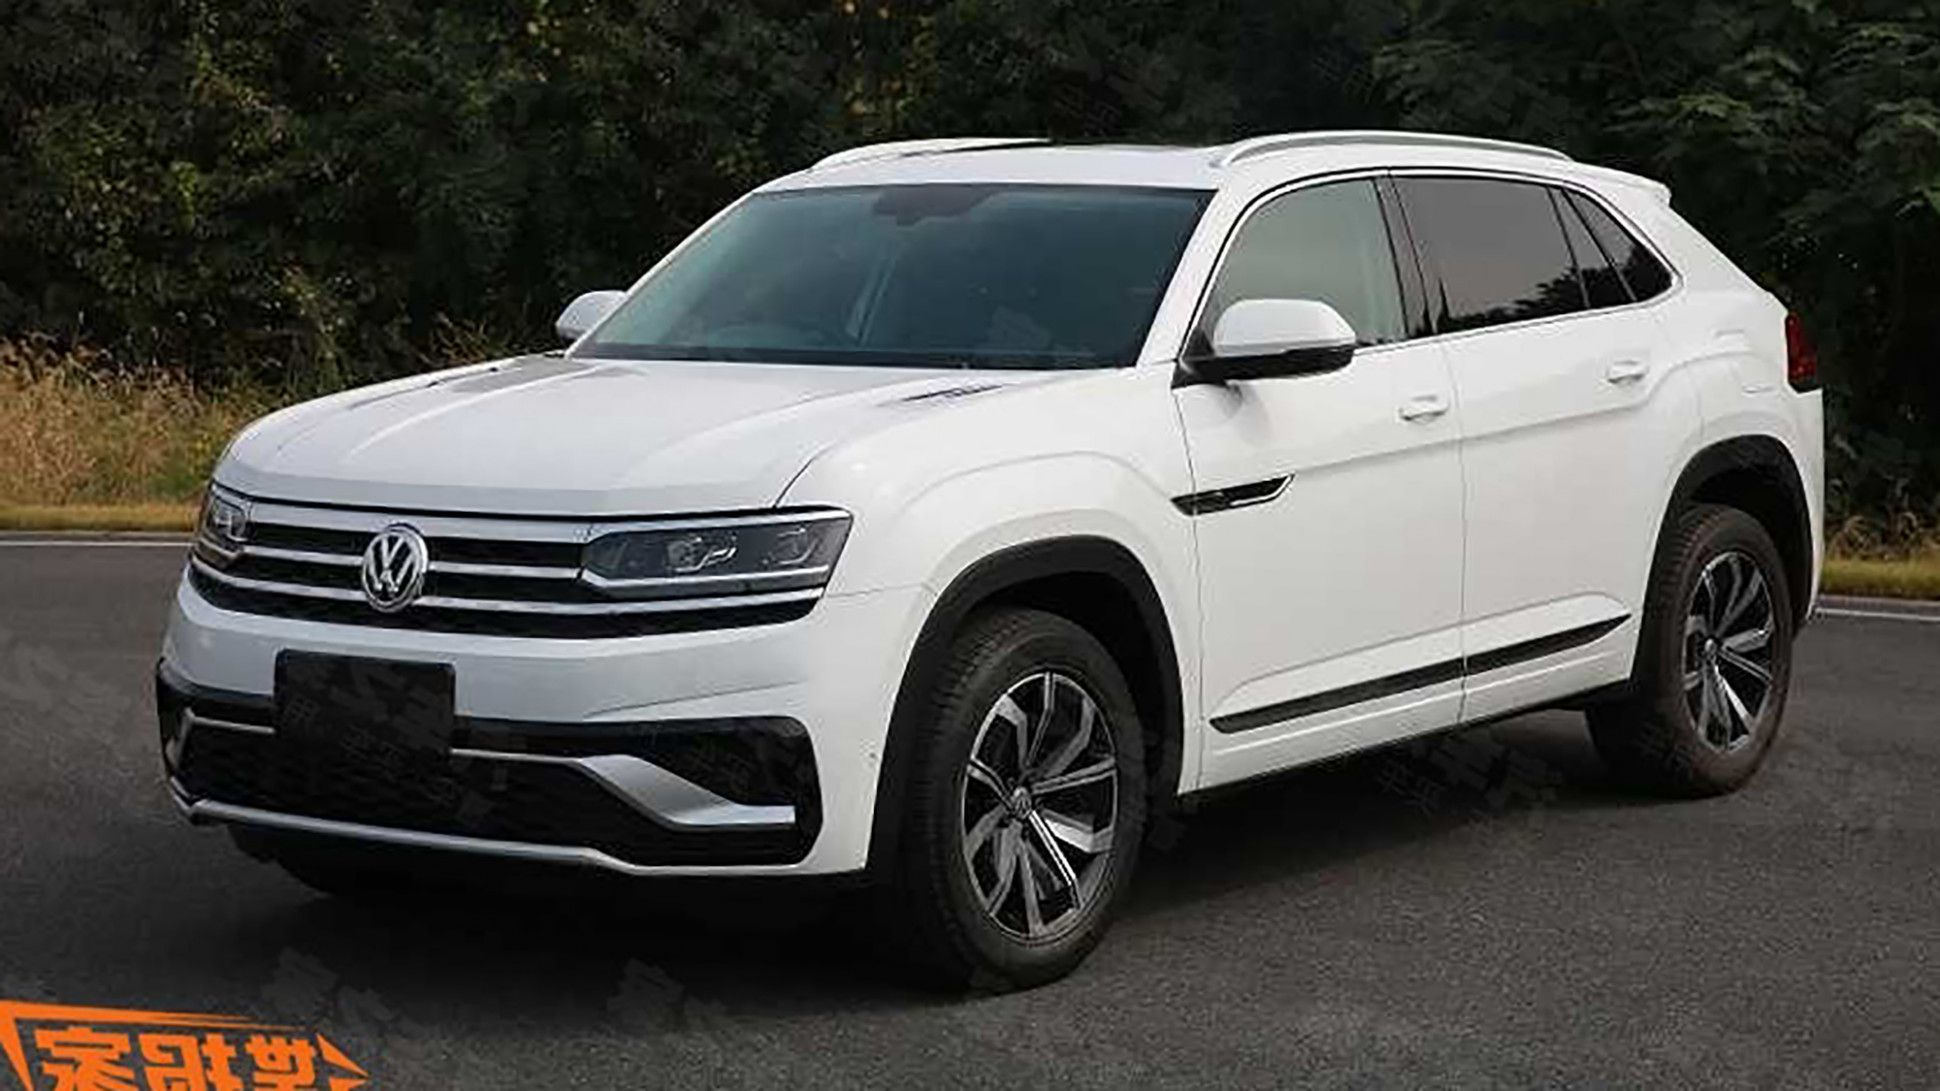 5 Facts About Volkswagen Atlas 2020 Price That Will Blow Your Mind Volkswagen New Cars Vw Jetta